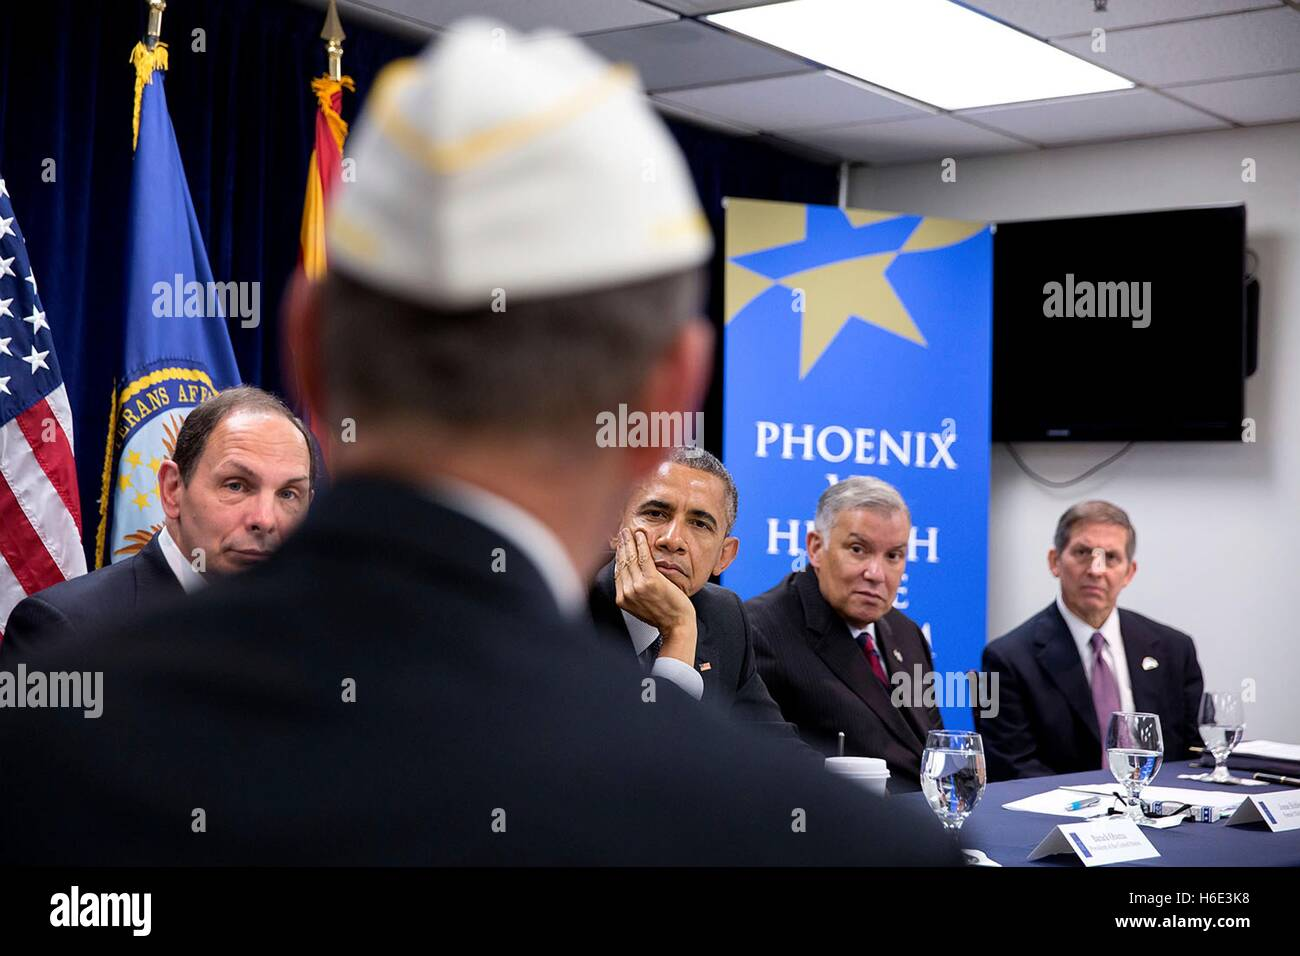 U.S. President Barack Obama and Veterans Affairs Secretary Robert McDonald meet with veterans and VA employees during - Stock Image